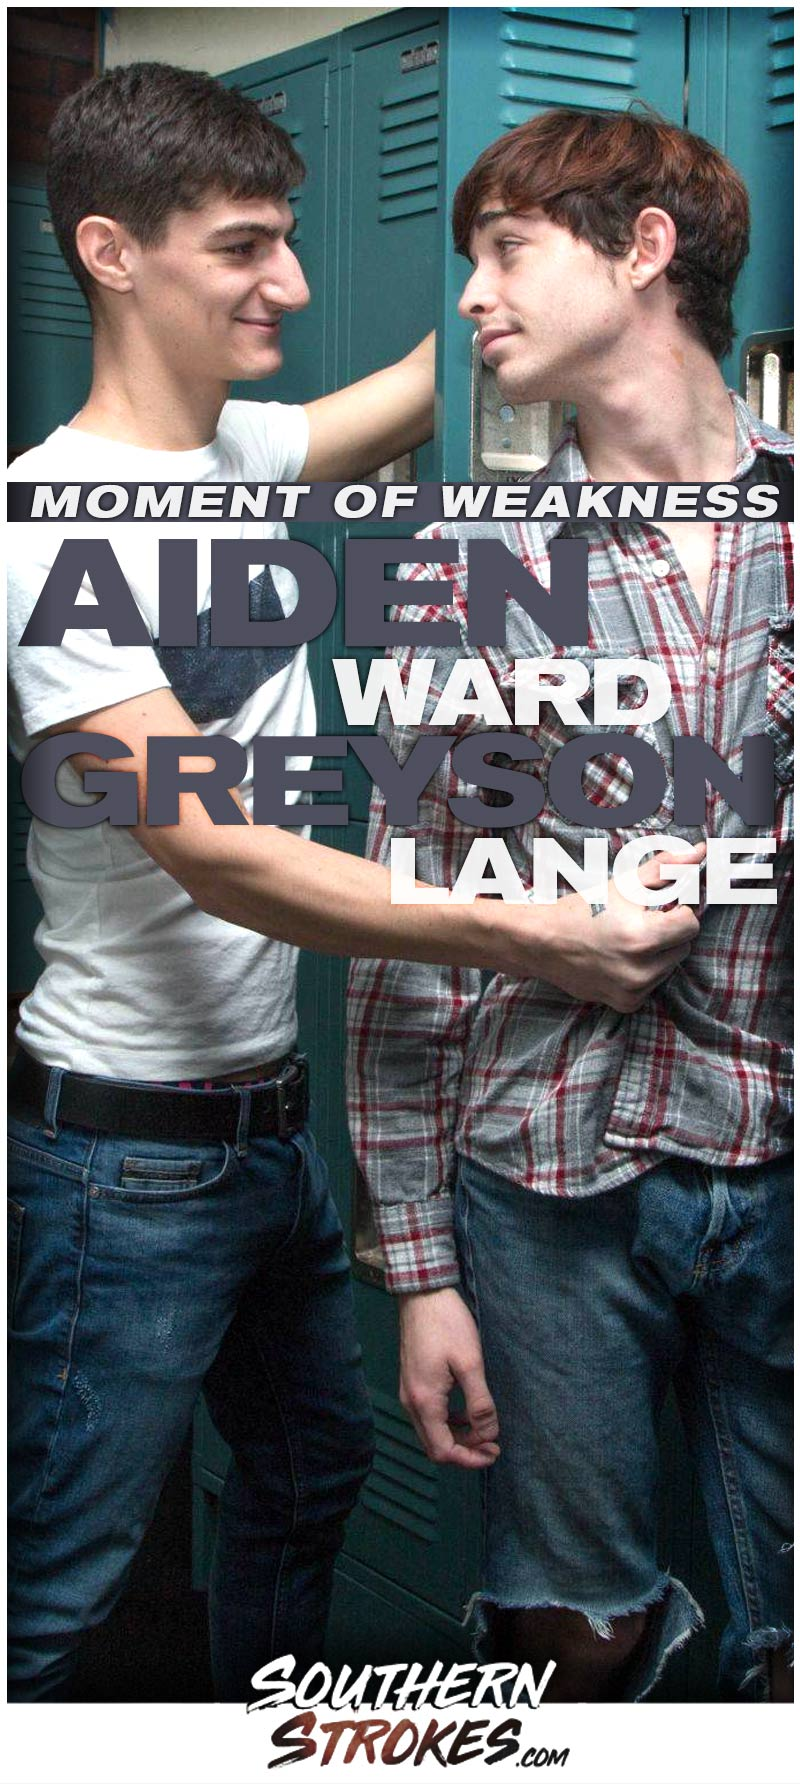 Moment of Weakness (Aiden Ward and Grayson Lange) at Southern Strokes